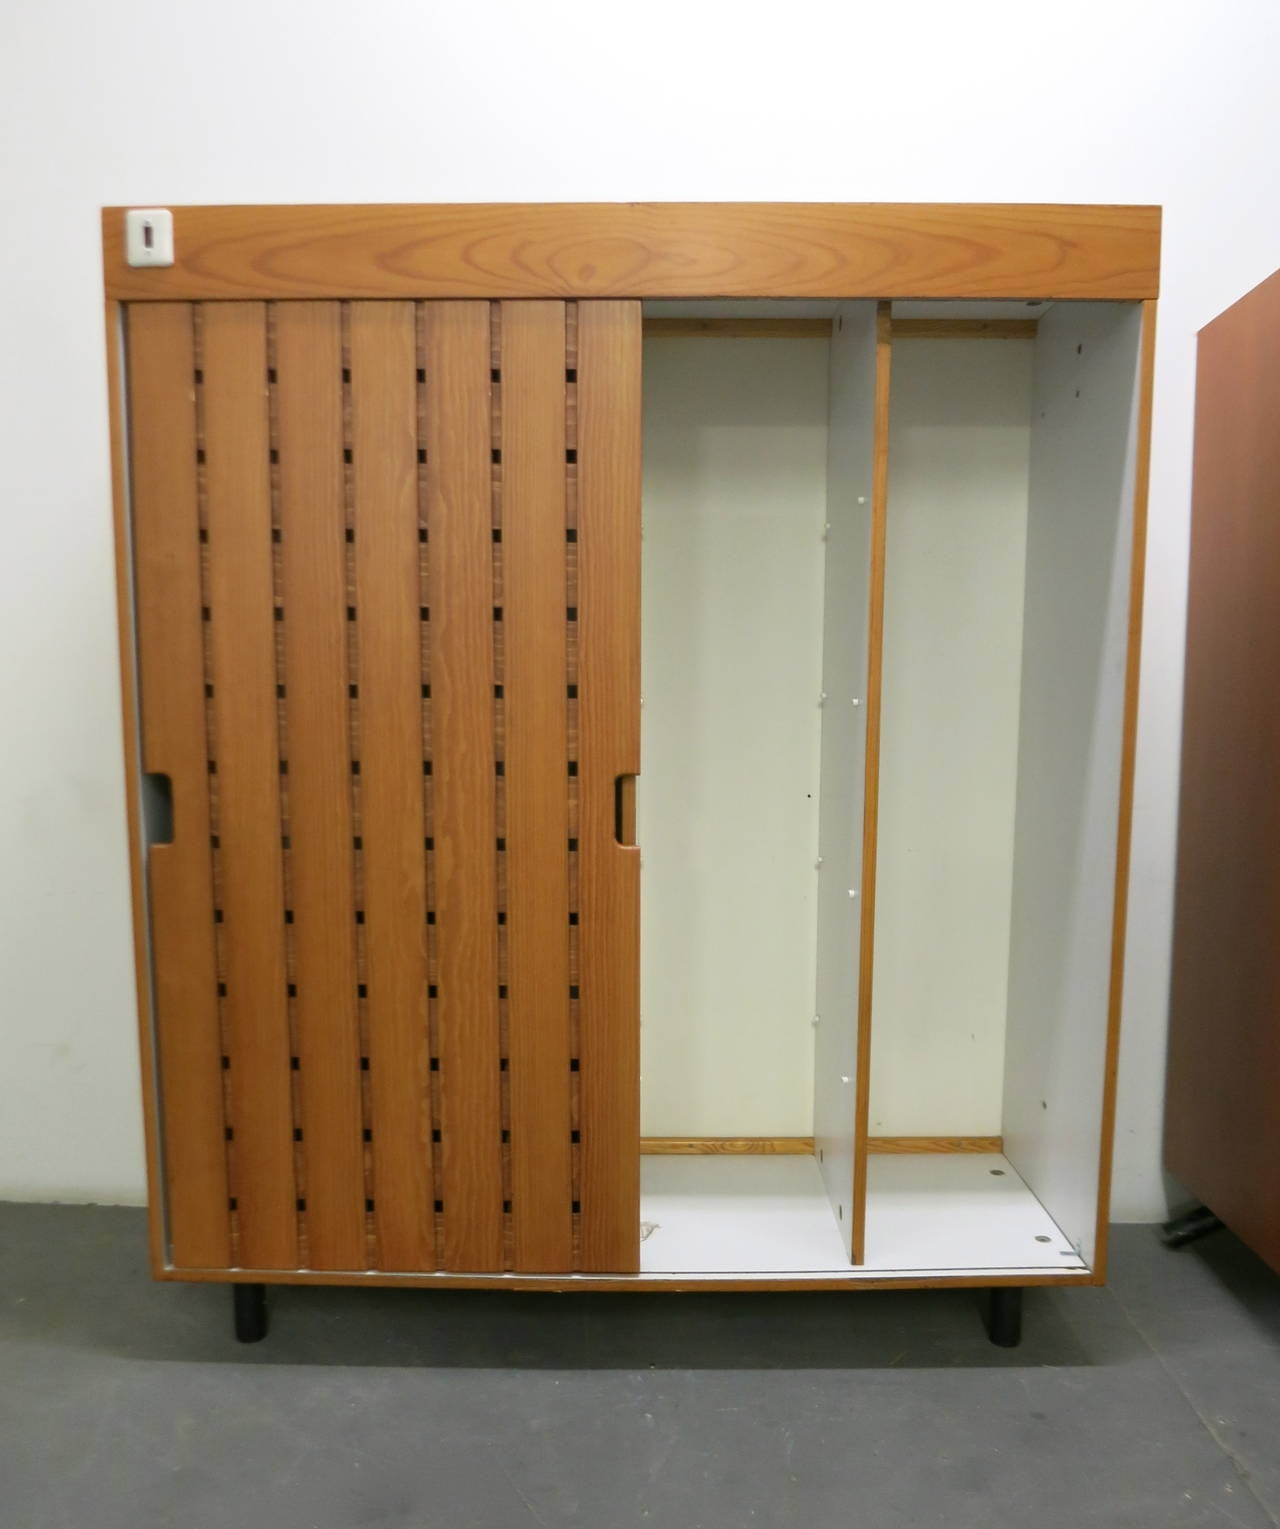 Pair of Wardrobes by Charlotte Perriand, in 1967 for Les Arc Ski Lodge, France For Sale 1